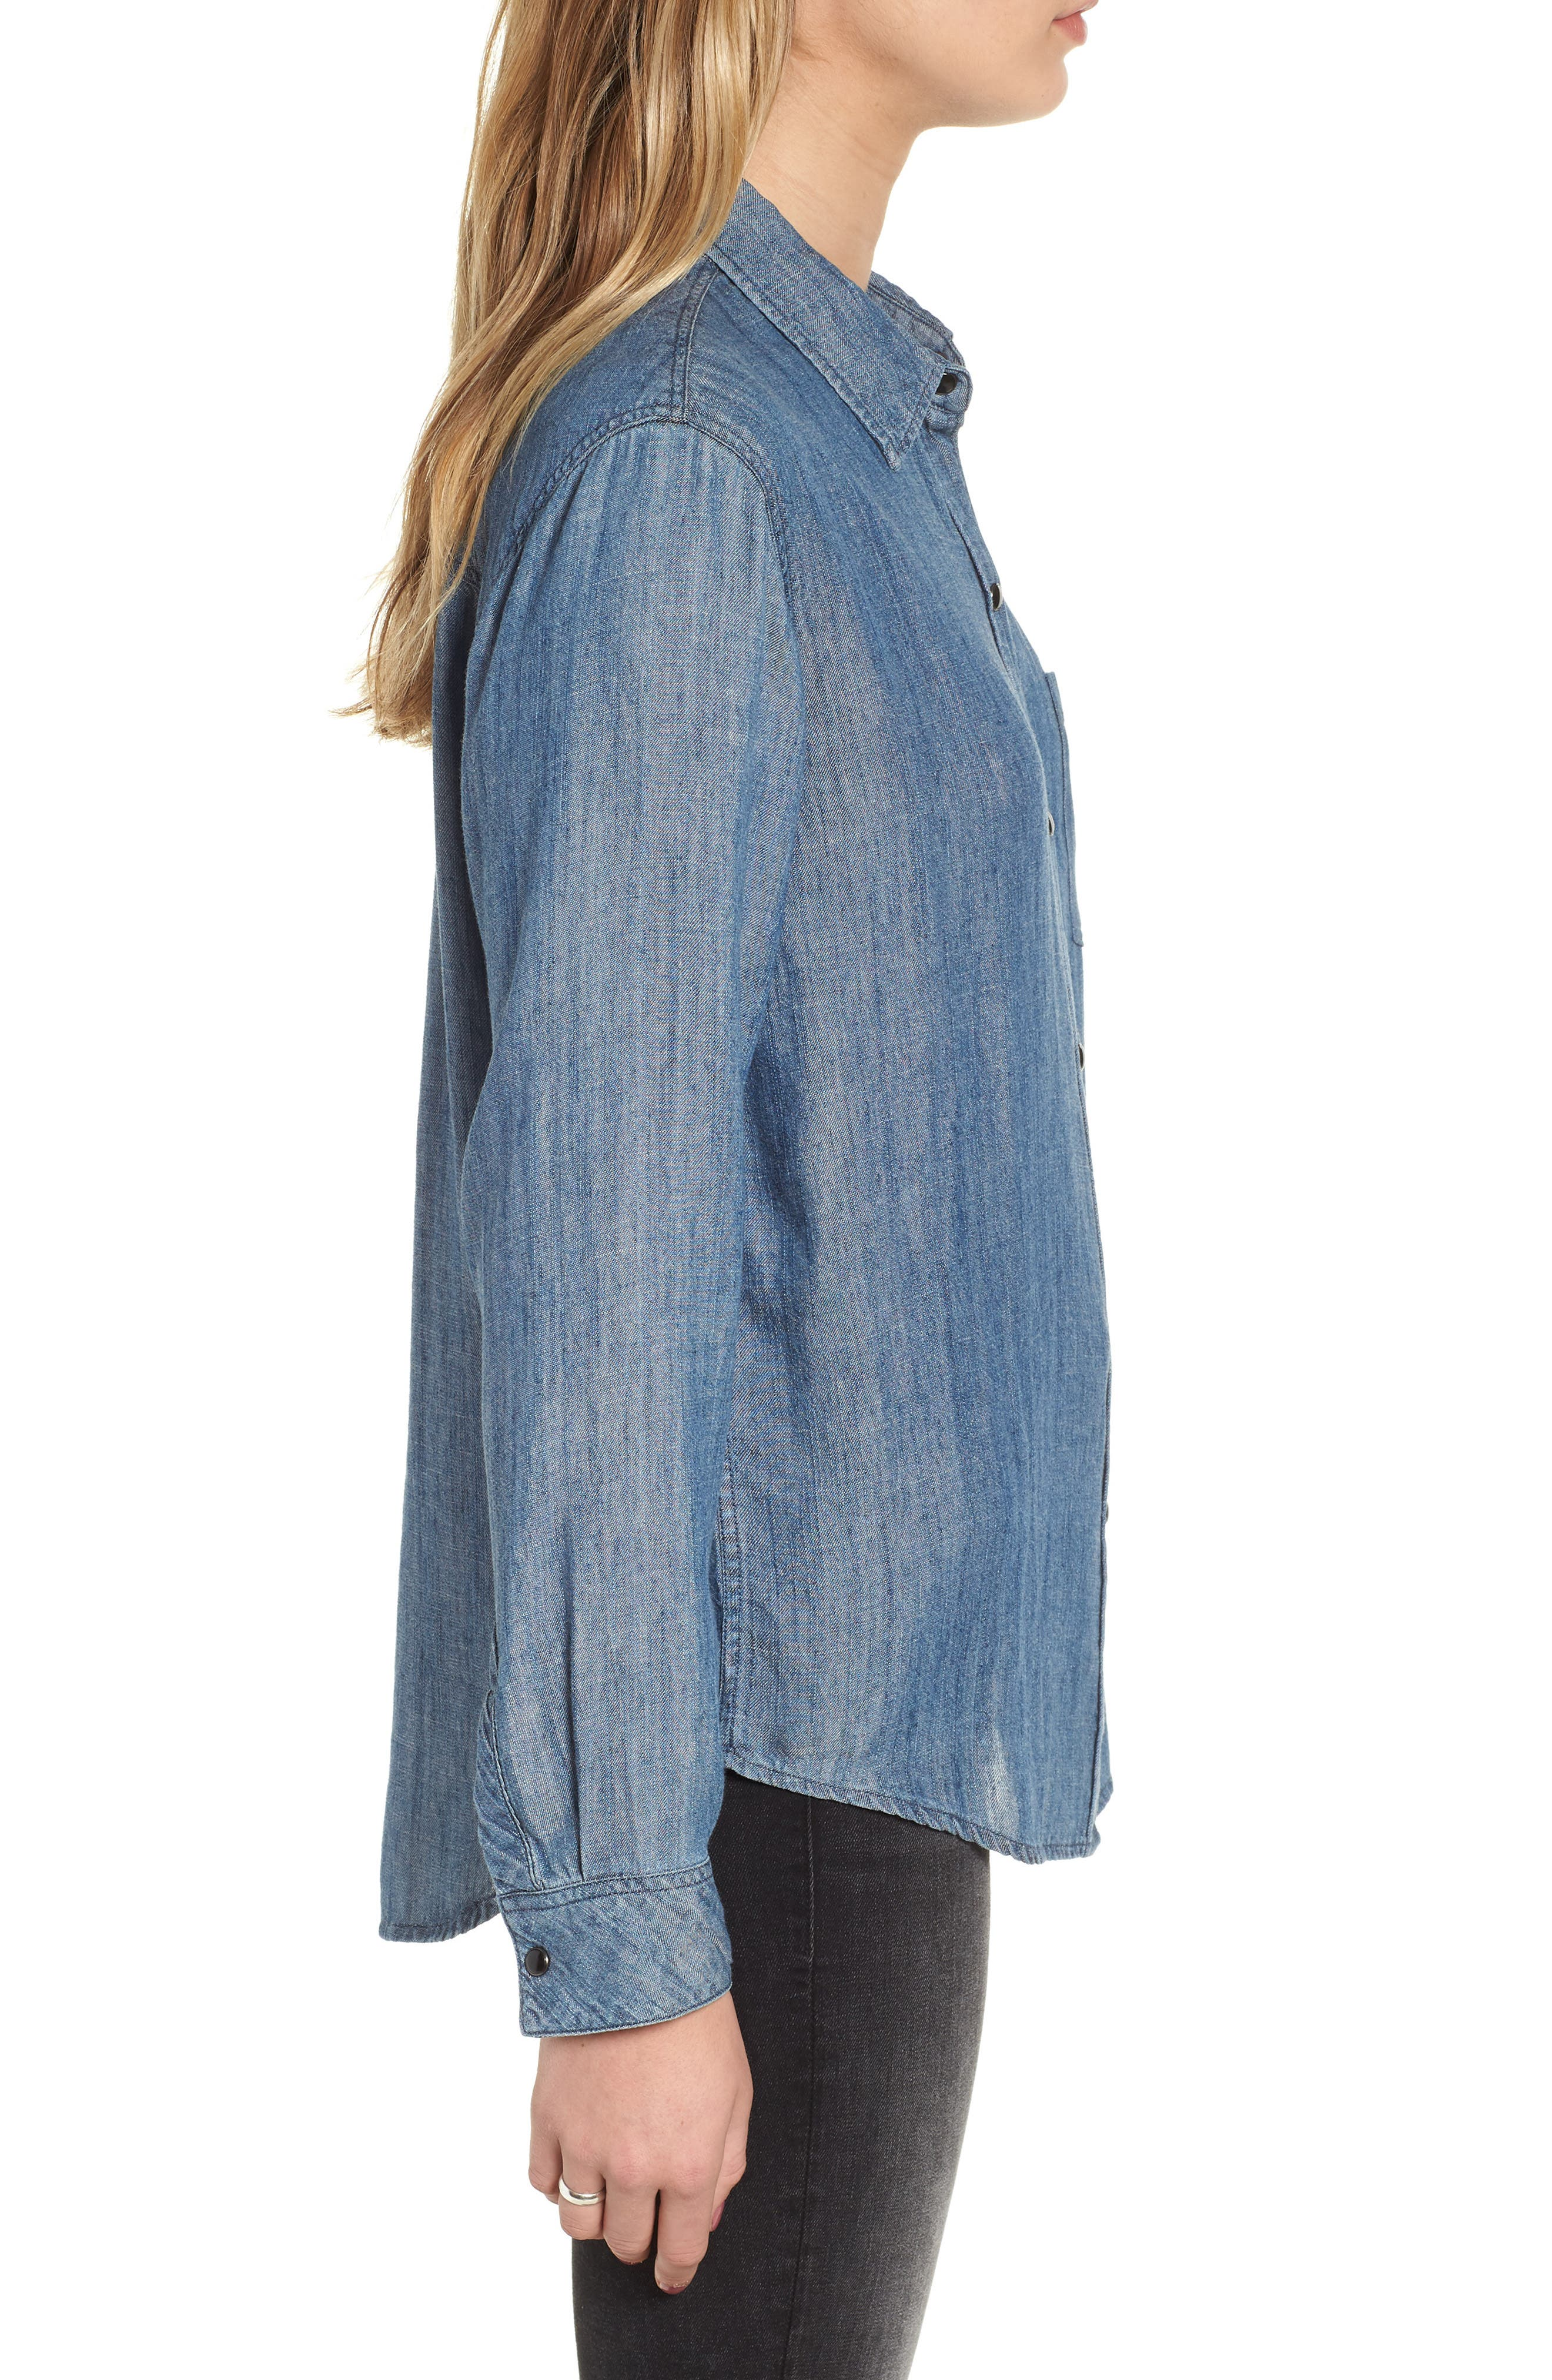 Cass Chambray Top,                             Alternate thumbnail 3, color,                             DARK VINTAGE WASH